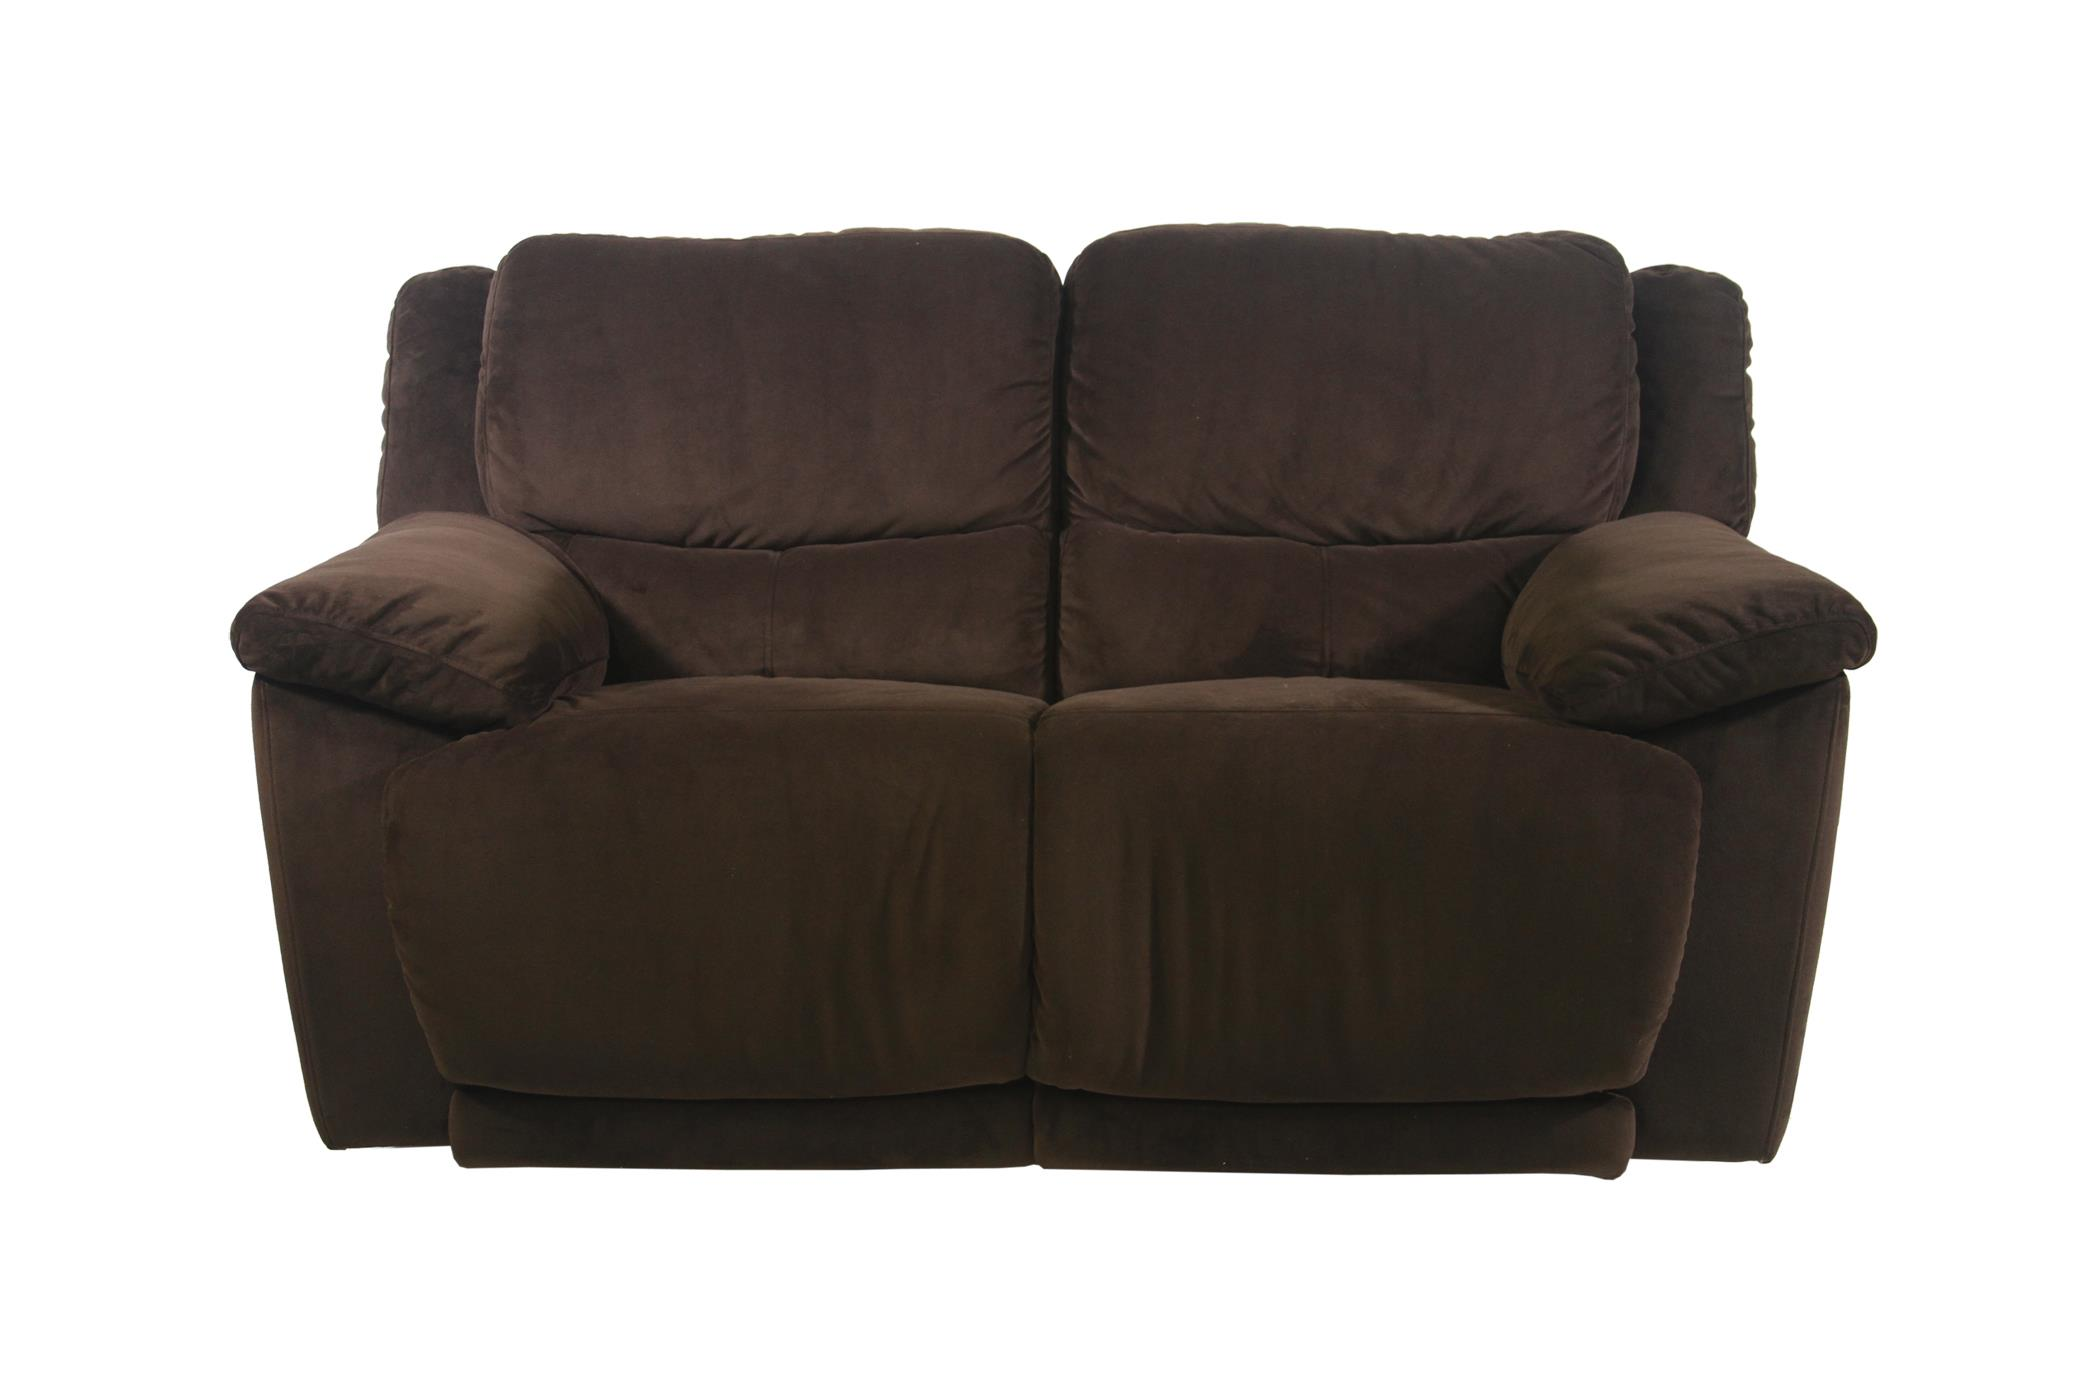 Futura Leather Cole Reclining Loveseat - Item Number: M149-82